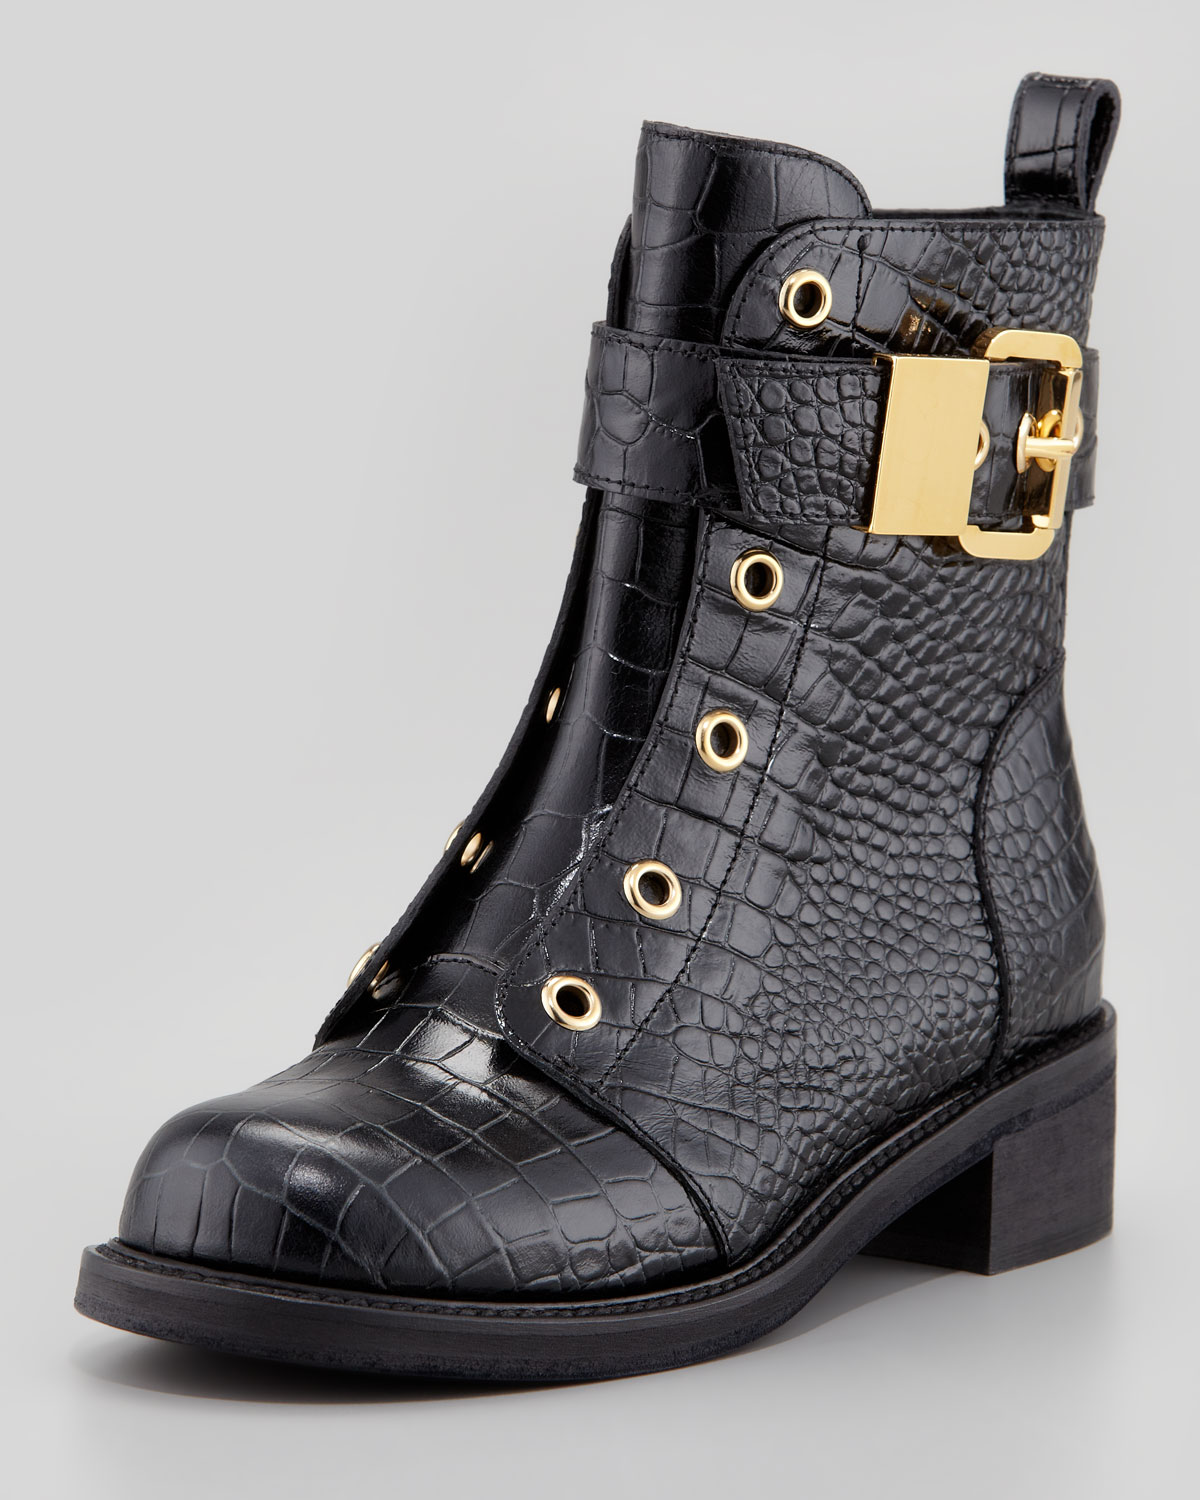 Giuseppe zanotti Embossed Laceless Combat Boot in Black | Lyst